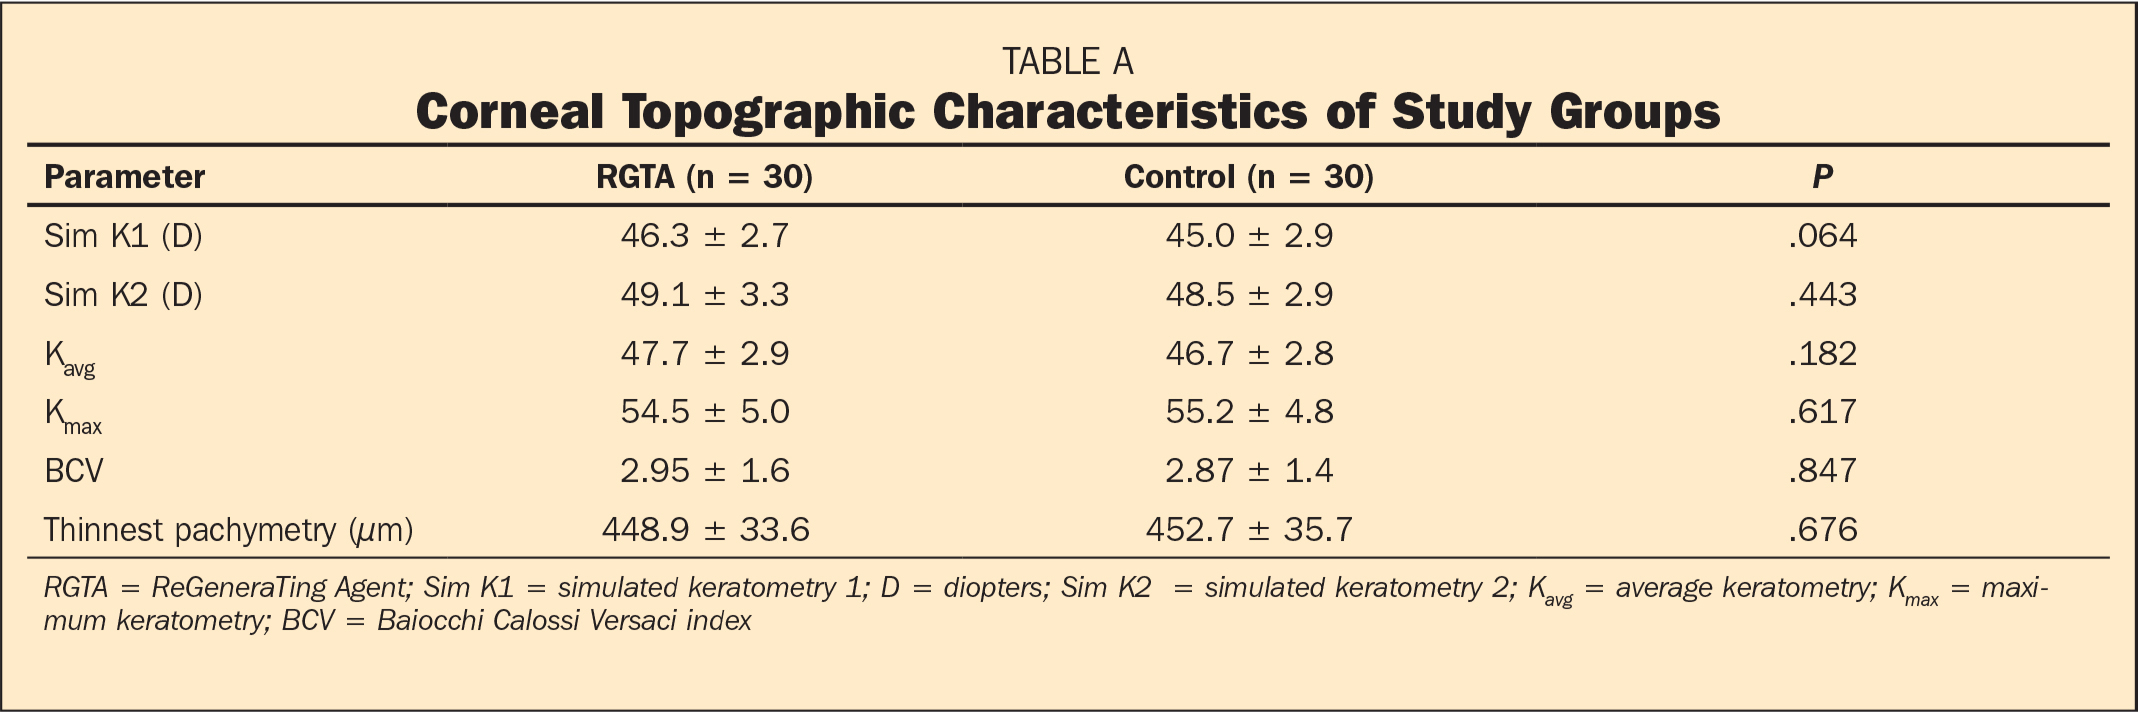 Corneal Topographic Characteristics of Study Groups